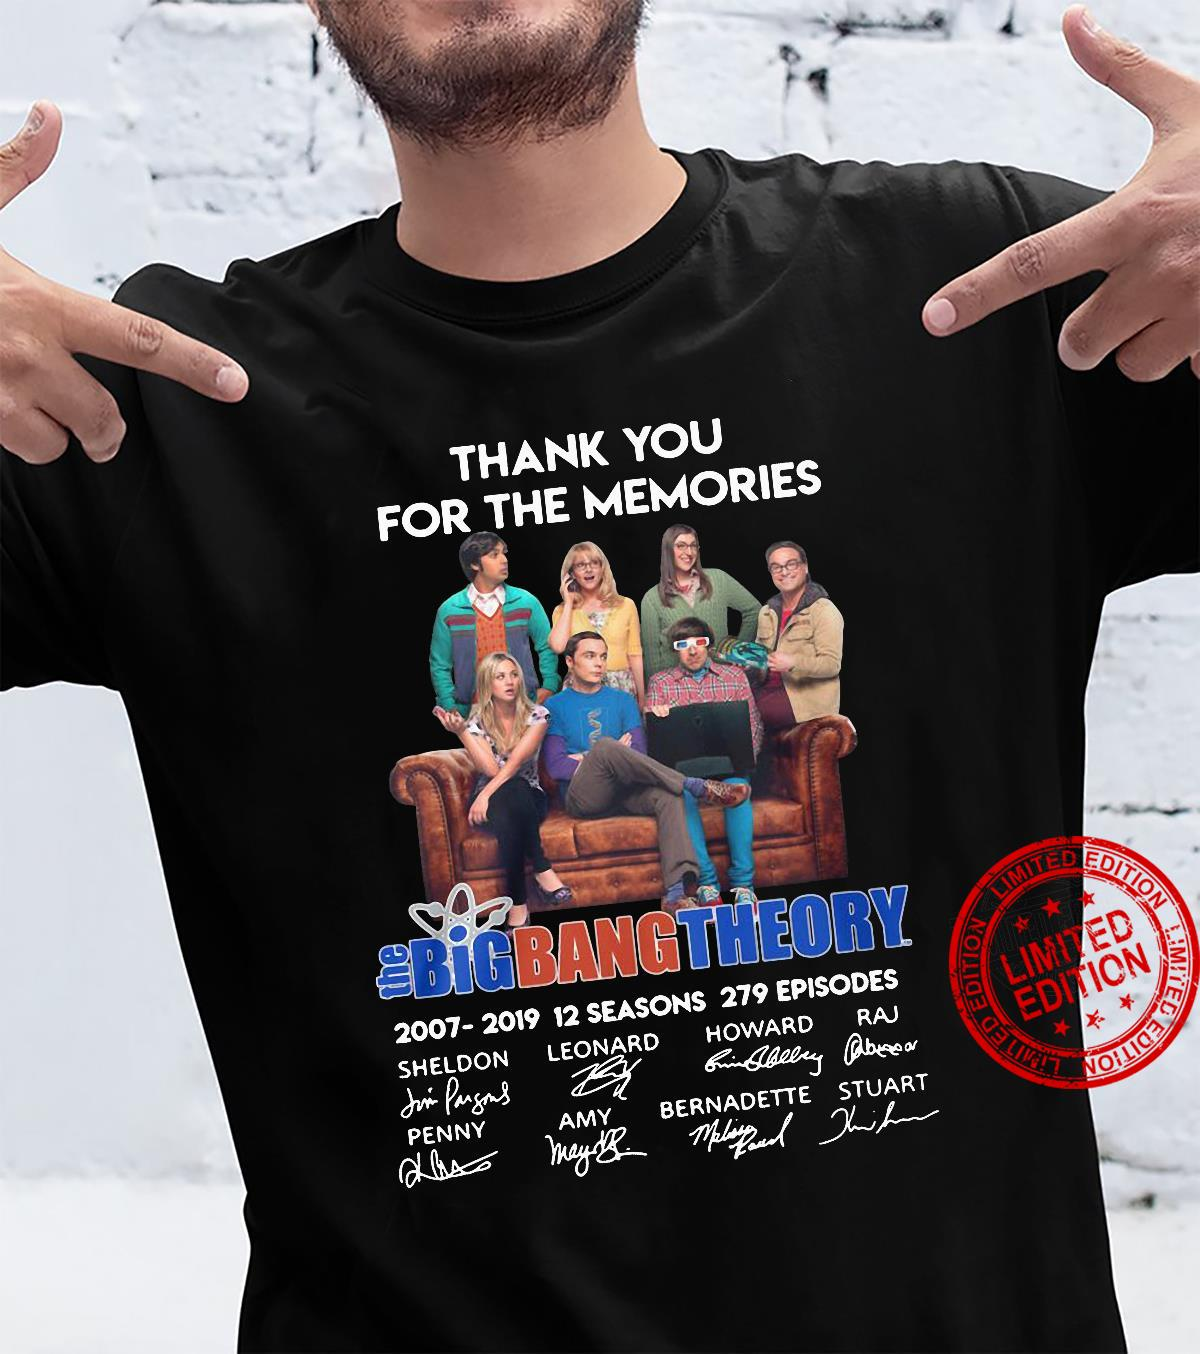 Thank you for the memories the bigbang theory signatures shirt